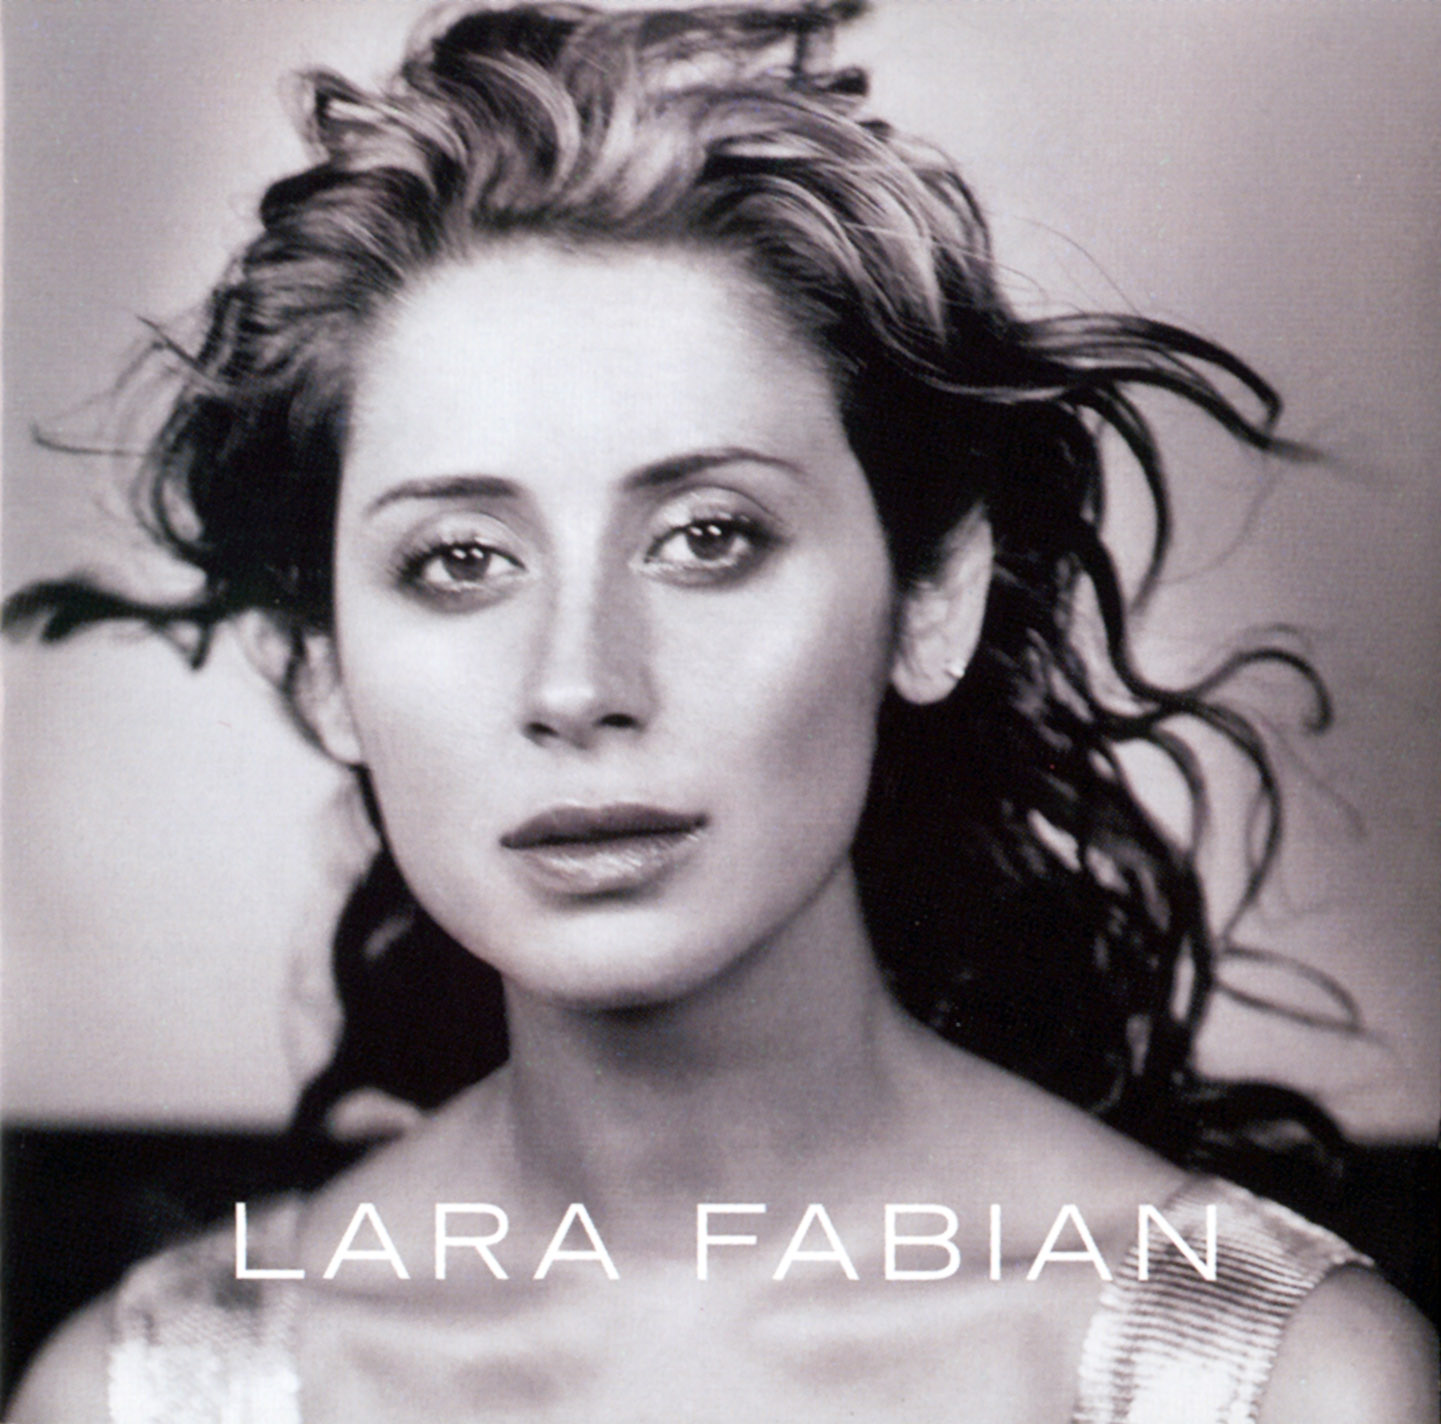 Download CD Lara Fabian - The Best Songs MP3 Música